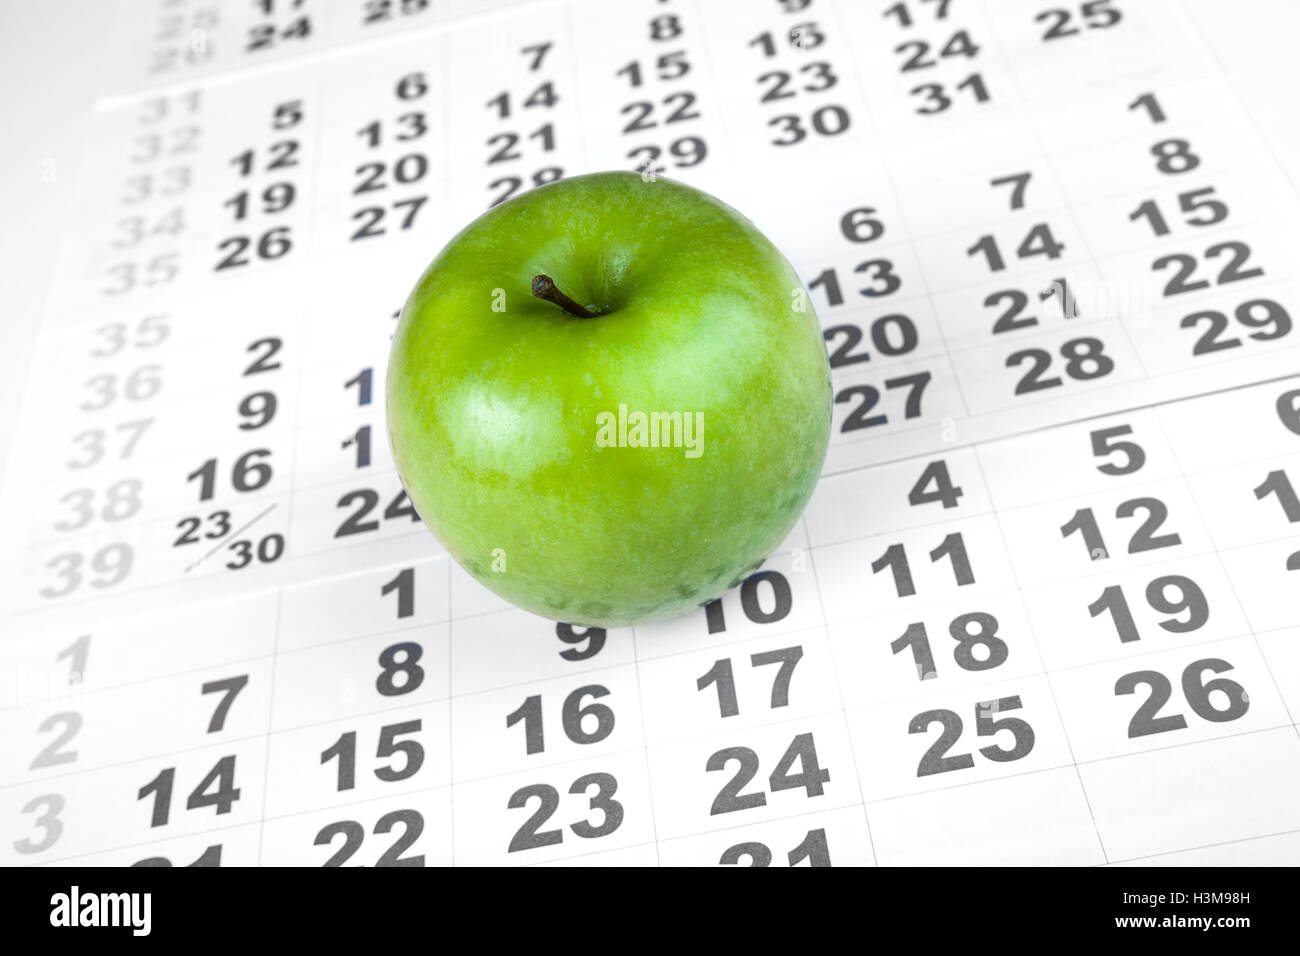 green apple on sheets of wall calendar - Stock Image